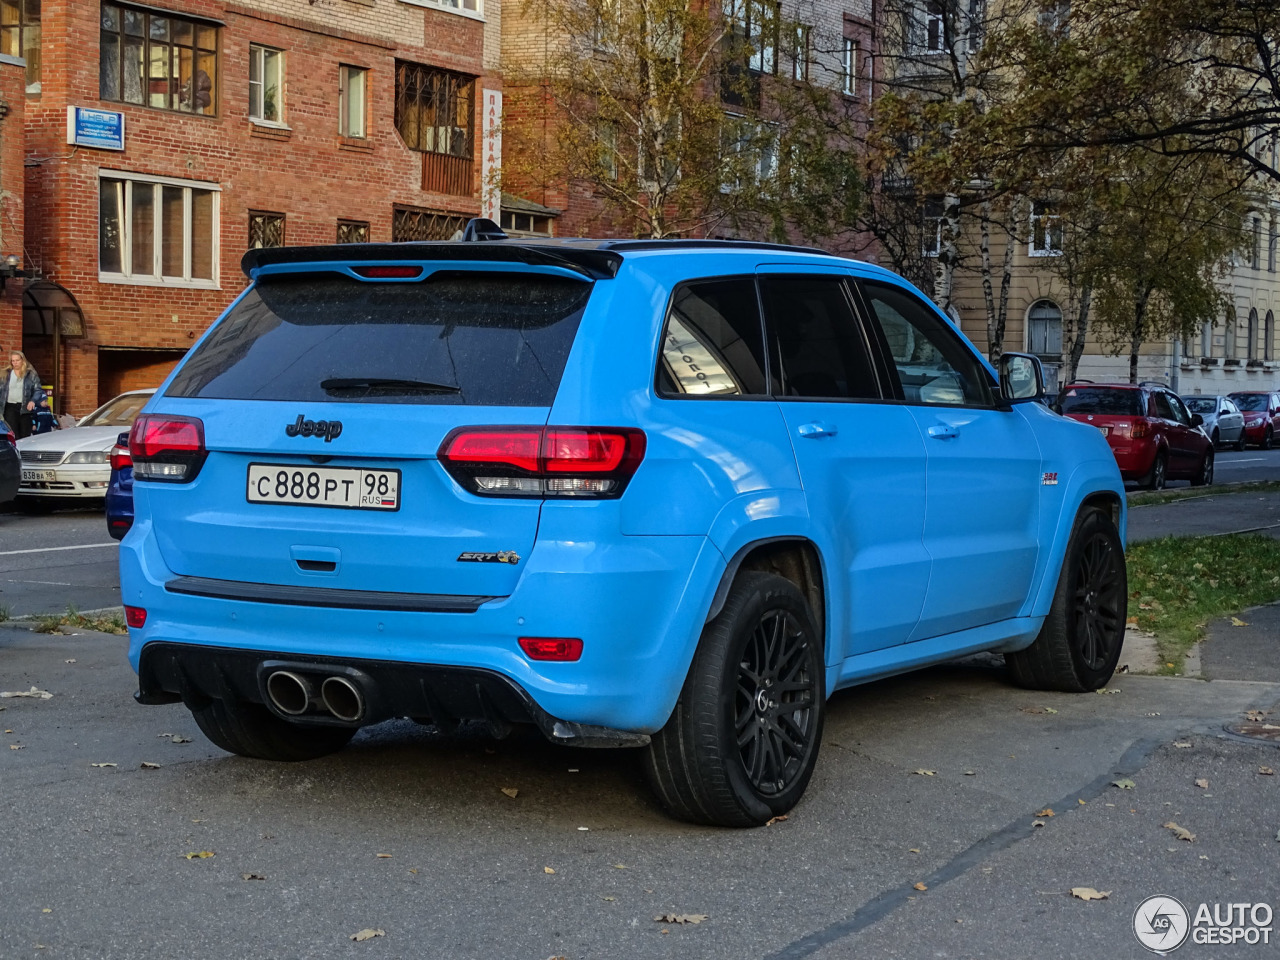 jeep grand cherokee srt 8 2013 25 october 2016 autogespot. Black Bedroom Furniture Sets. Home Design Ideas